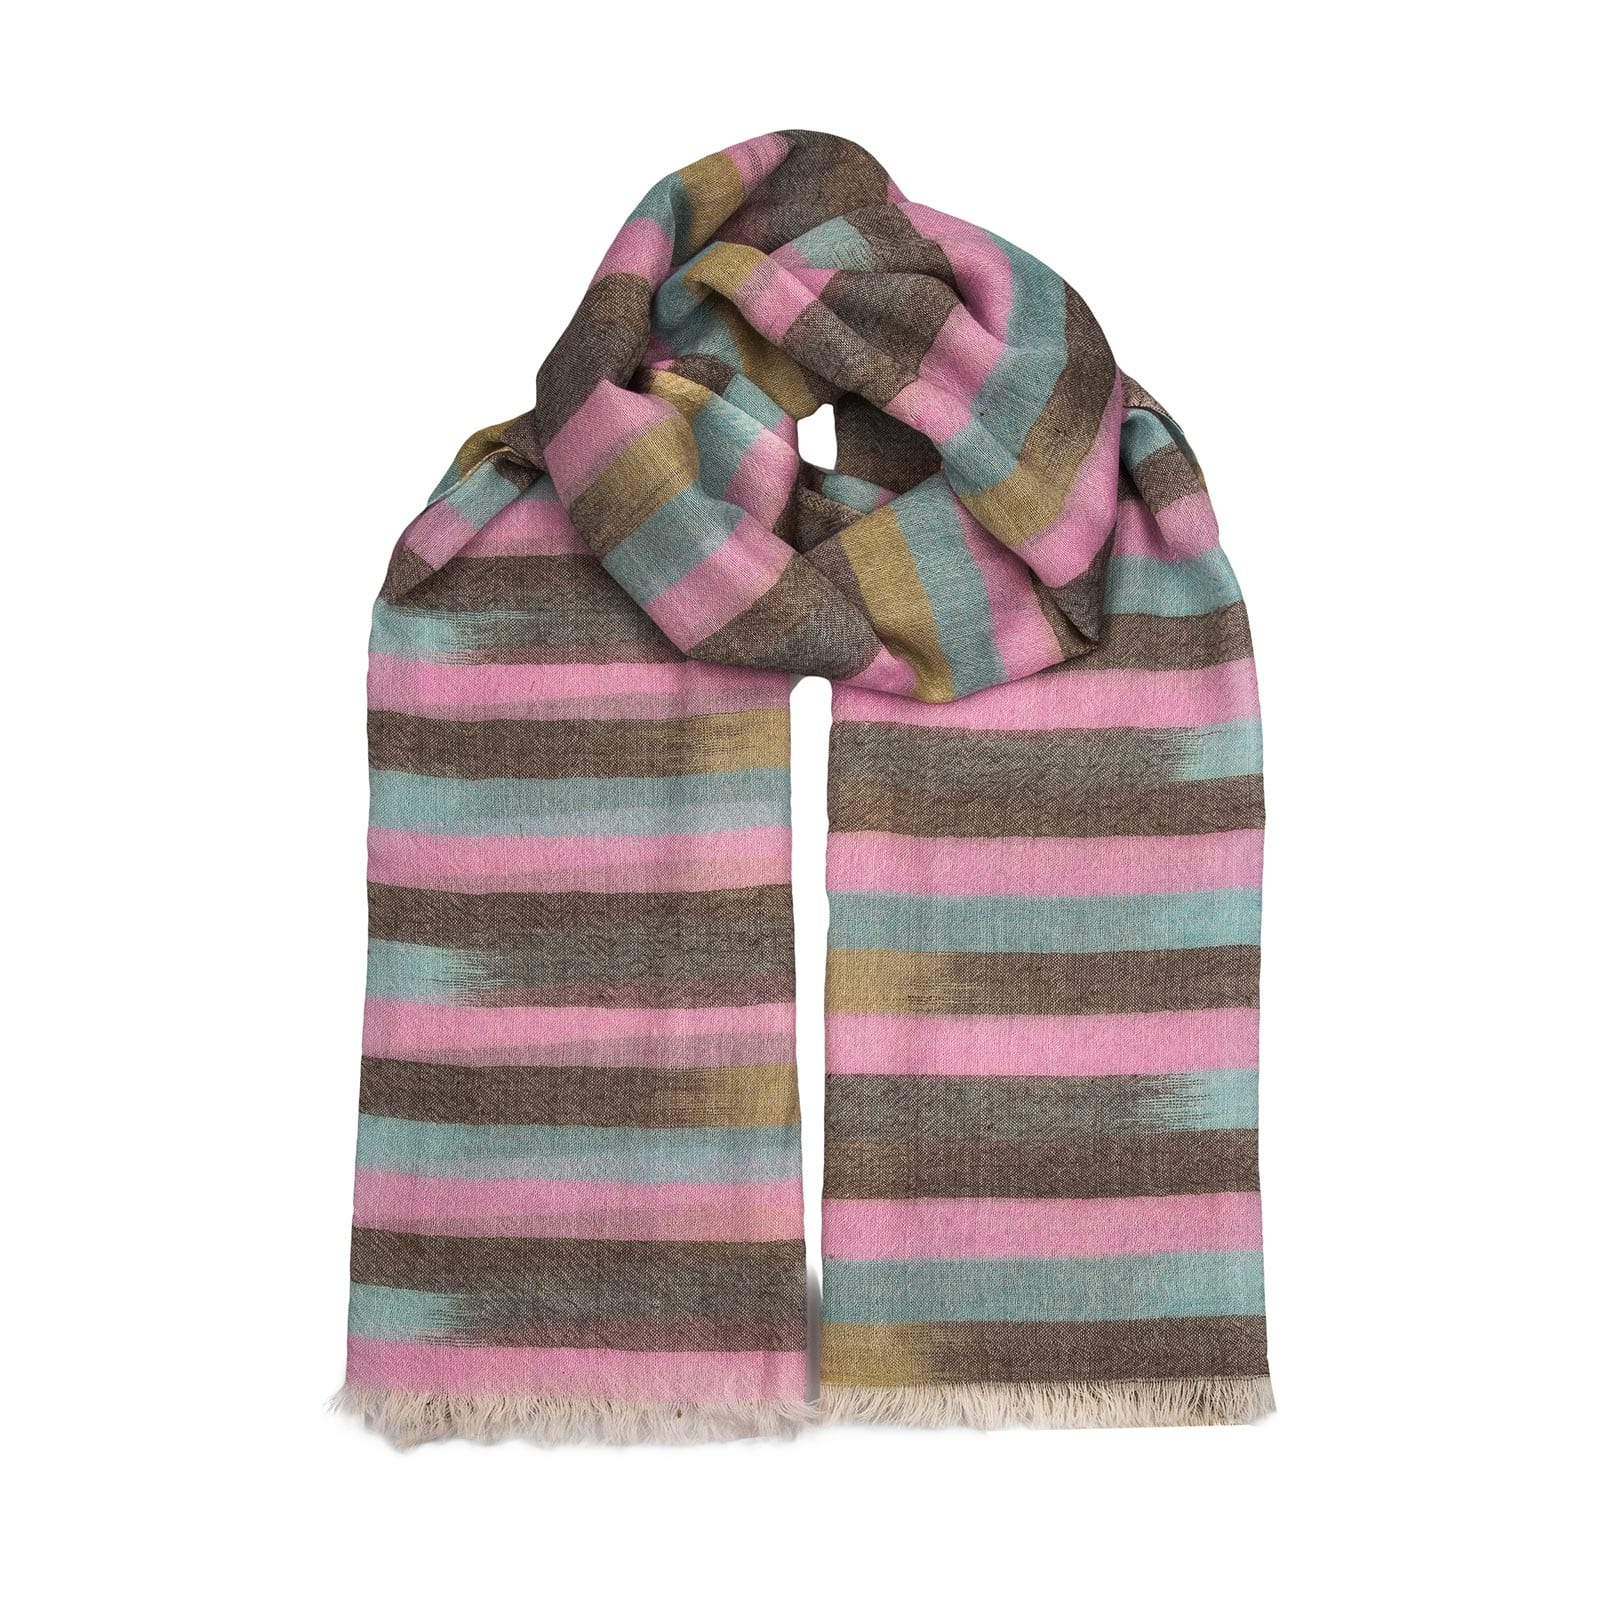 Neutral cashmere scarf in an exquisite blend of cashmere & wool, lending it to being both lightweight & warm. In pinks, browns & blues.